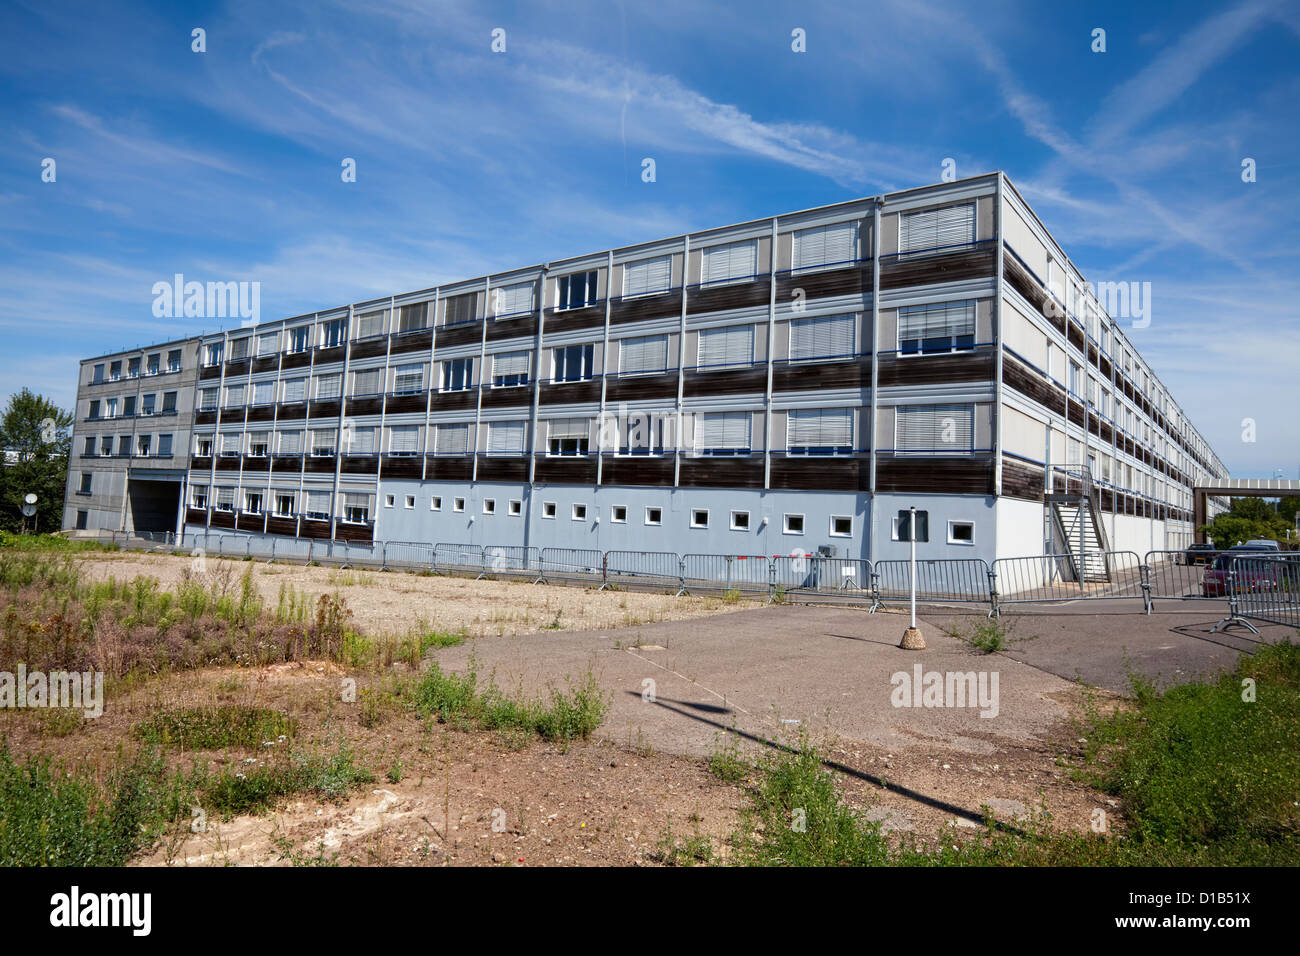 Container Building, European Court of Justice, Kirchberg, Luxembourg City, Europe - Stock Image